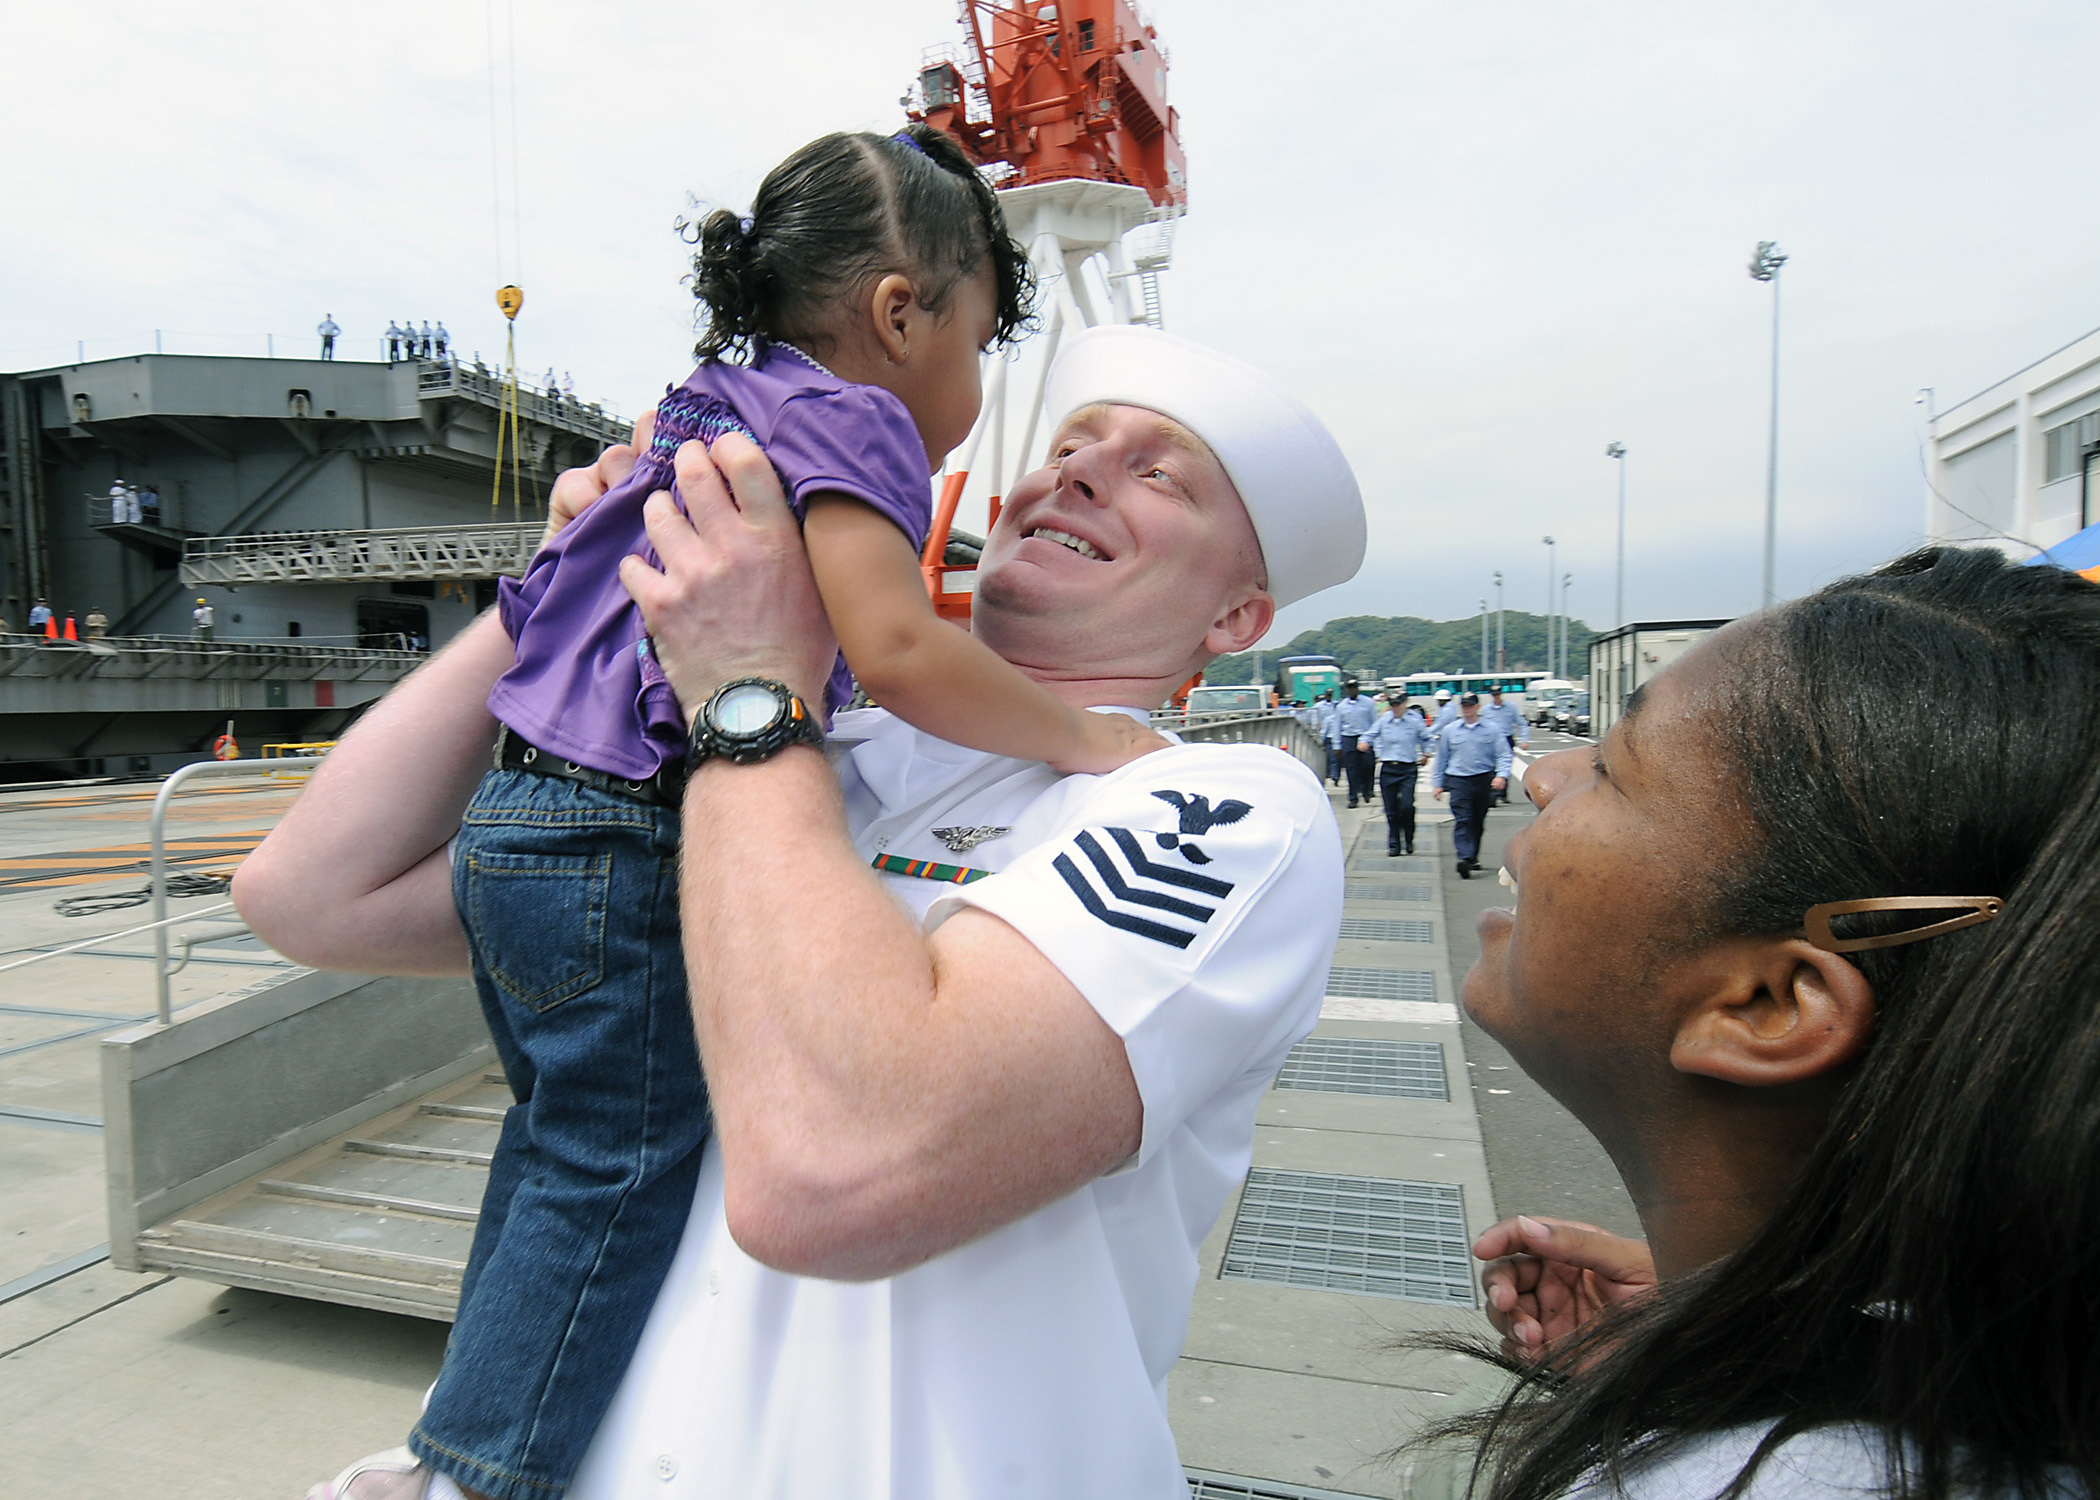 US Navy 090903-N-1062H-077 Chief Aviation Ordnanceman (Sel.) Charles Green raises his daughter into his arms during the return of the aircraft carrier USS George Washington (CVN 73) to Yokosuka, Japan